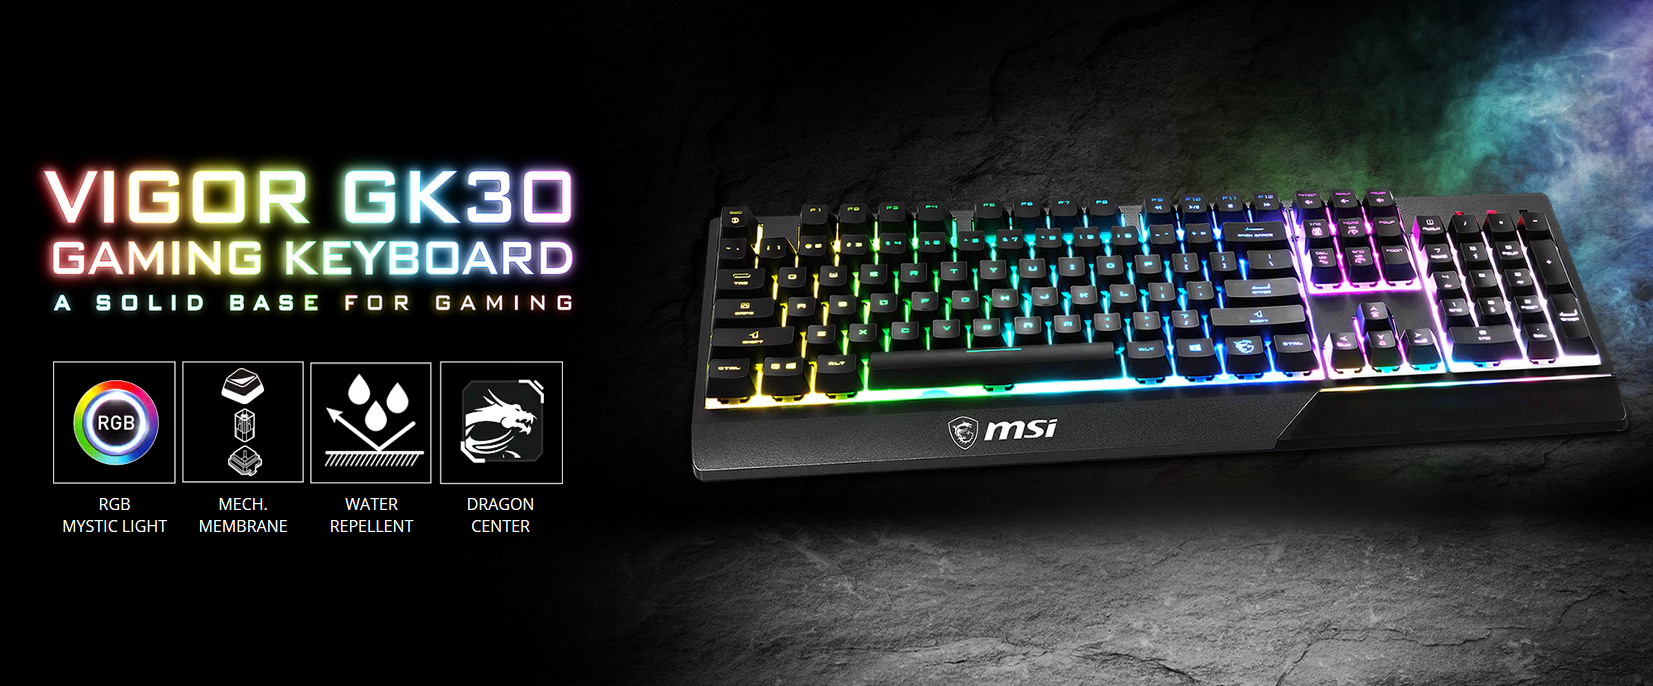 MSI Gaming Keyboard-Vigor GK30